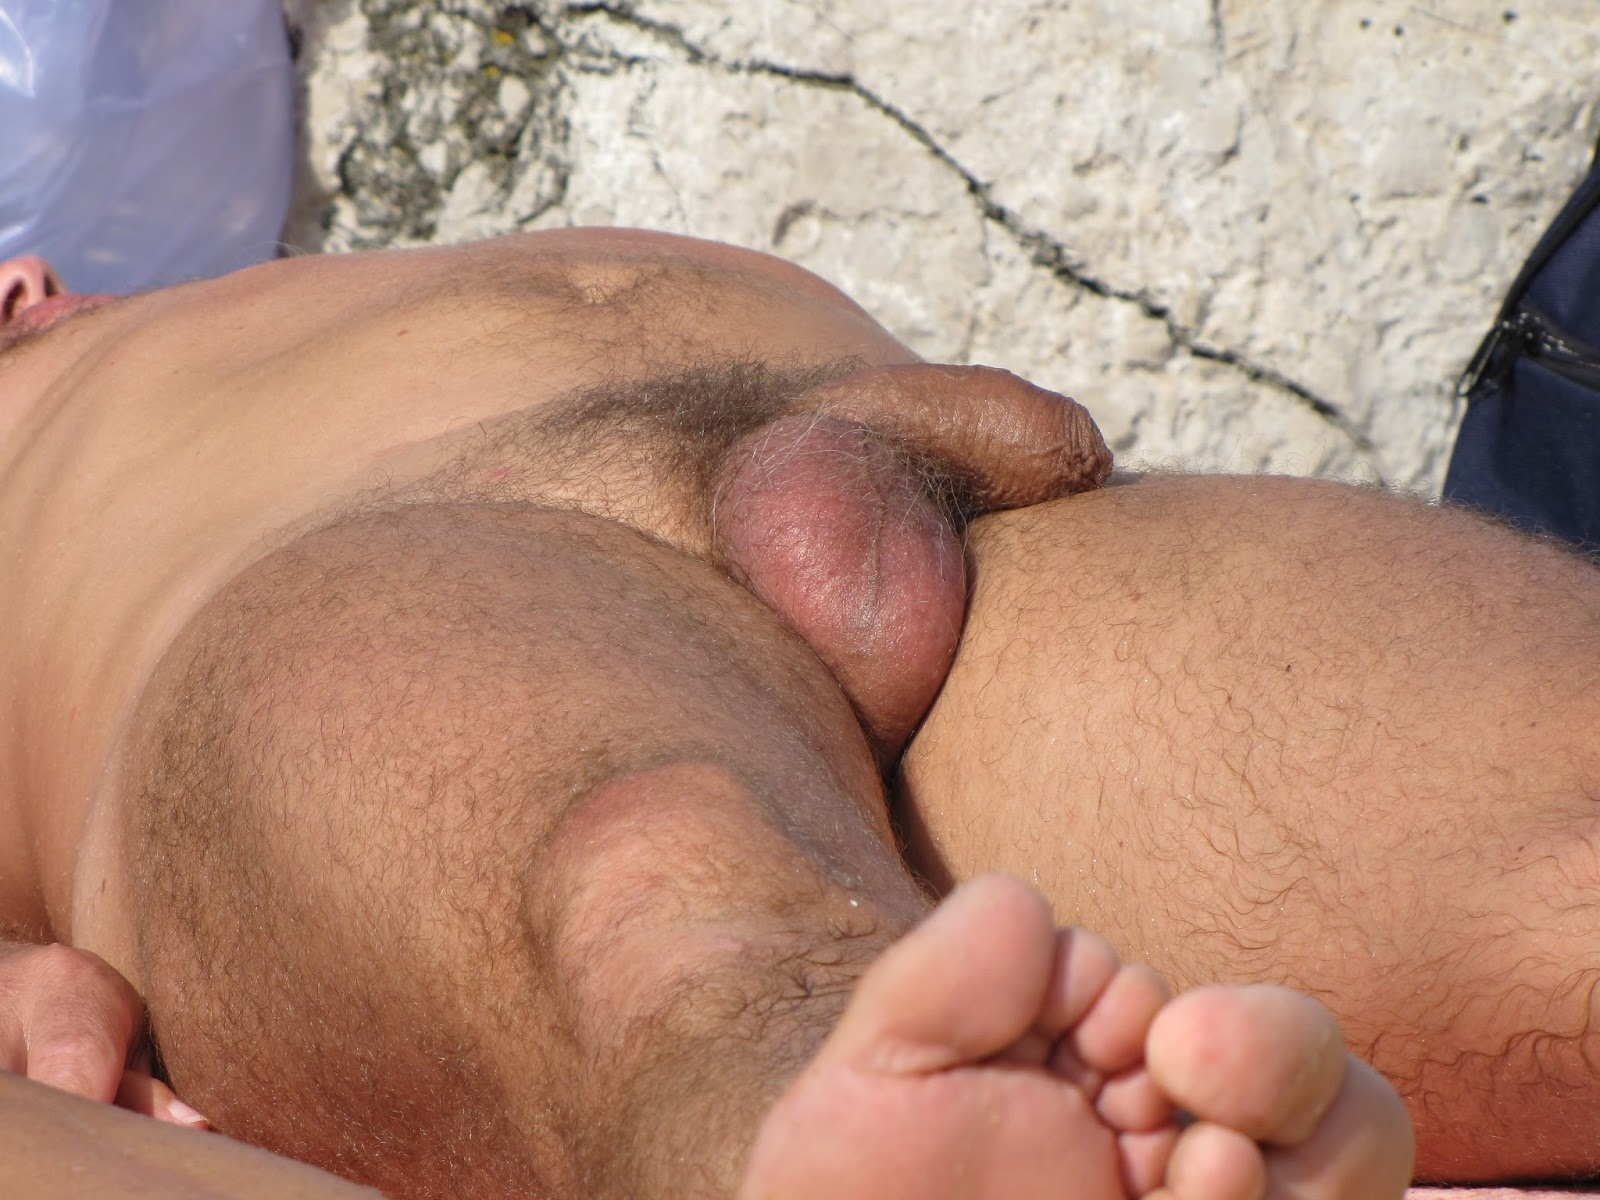 Real dirty graphic anal porn